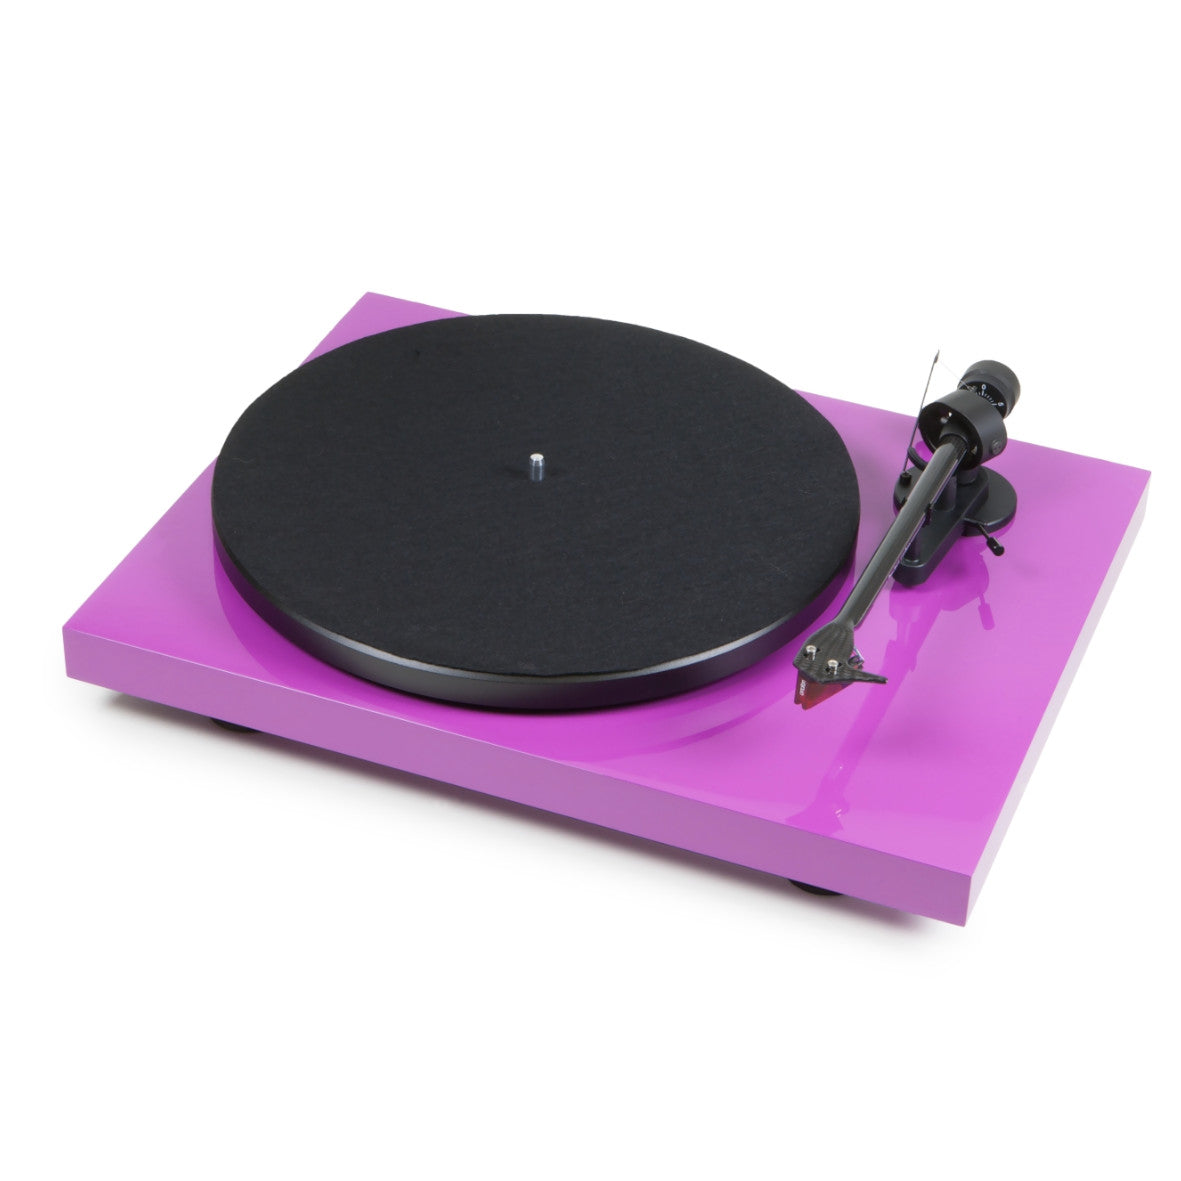 Pro-ject Carbon Debut / Maia S2 / Bowers & Wilkins 606 AE